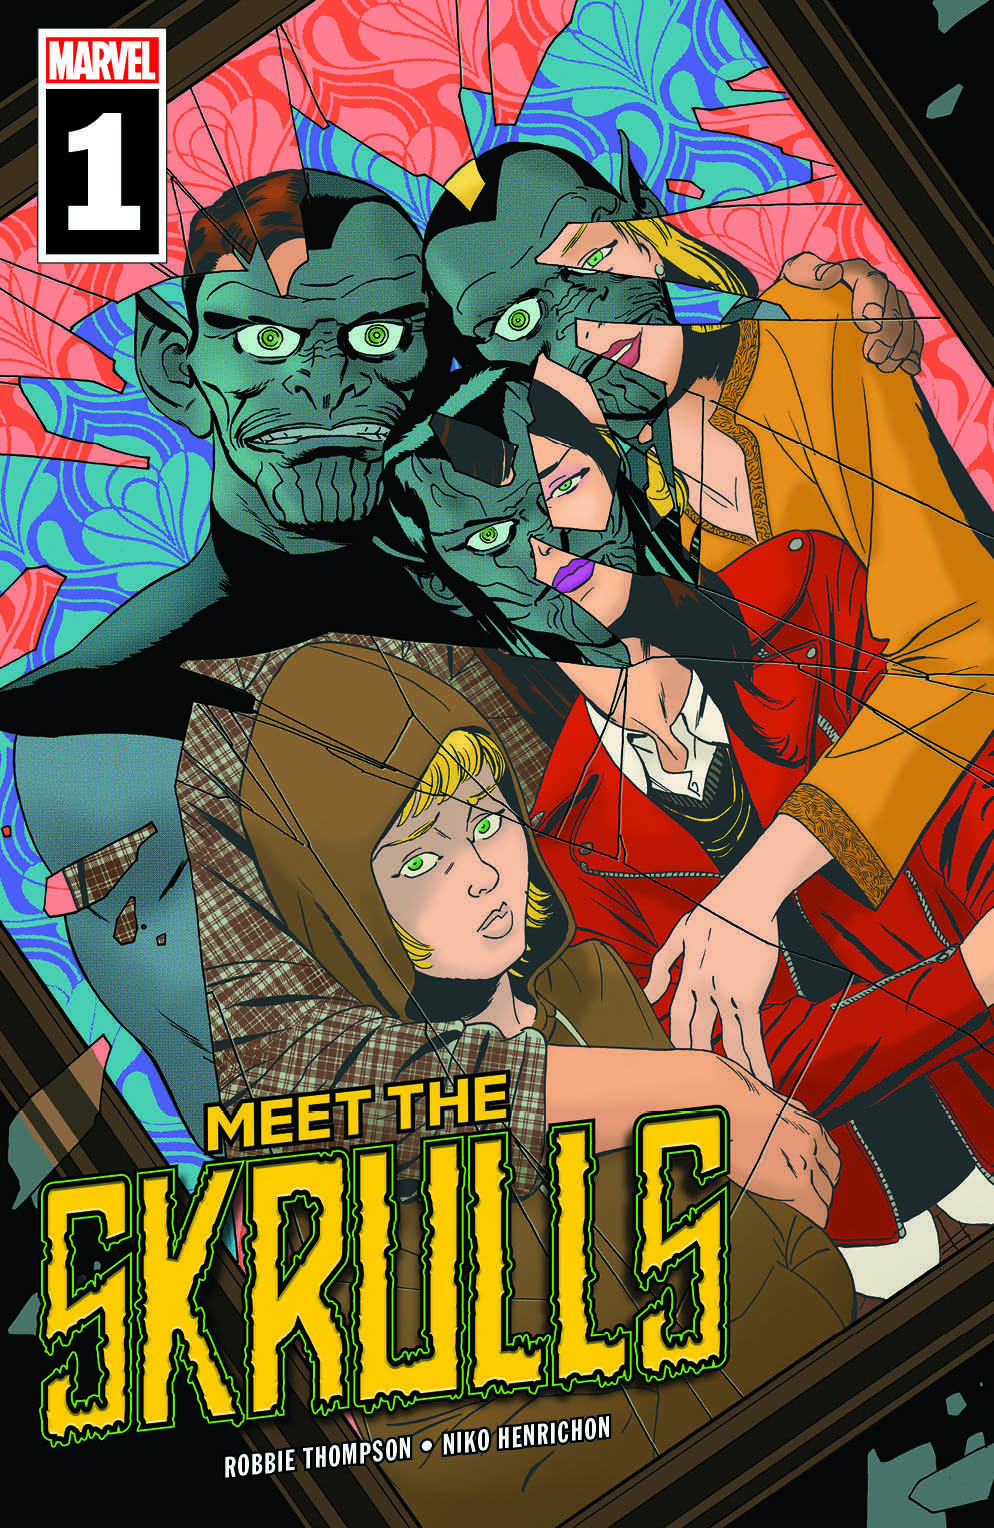 Meet The Skrulls #1 (Written by Robbie Thompson, Art by Niko Henrichon, Cover by Marcos Martin)